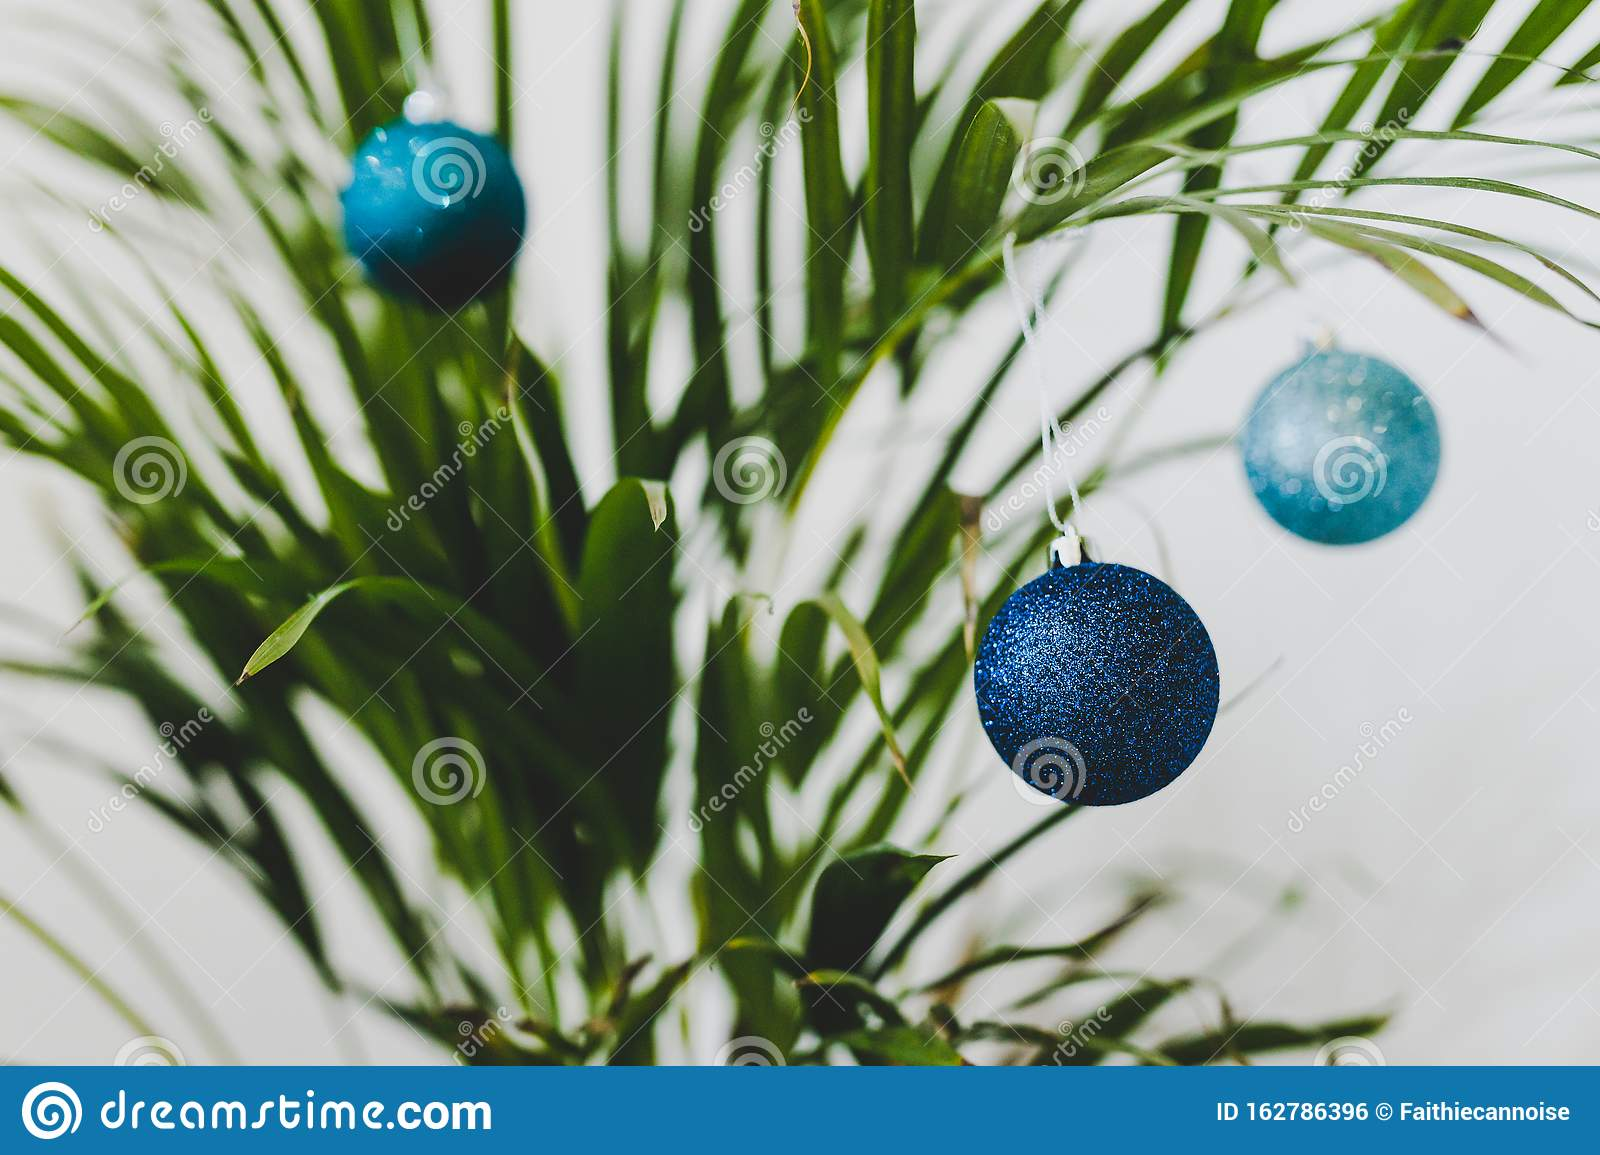 Alternative Christmas Tree Palm Plant With Christmas Baubles For The Festive Season In Summer For The Southern Hemisphere Stock Photo Image Of Religion Hemisphere 162786396